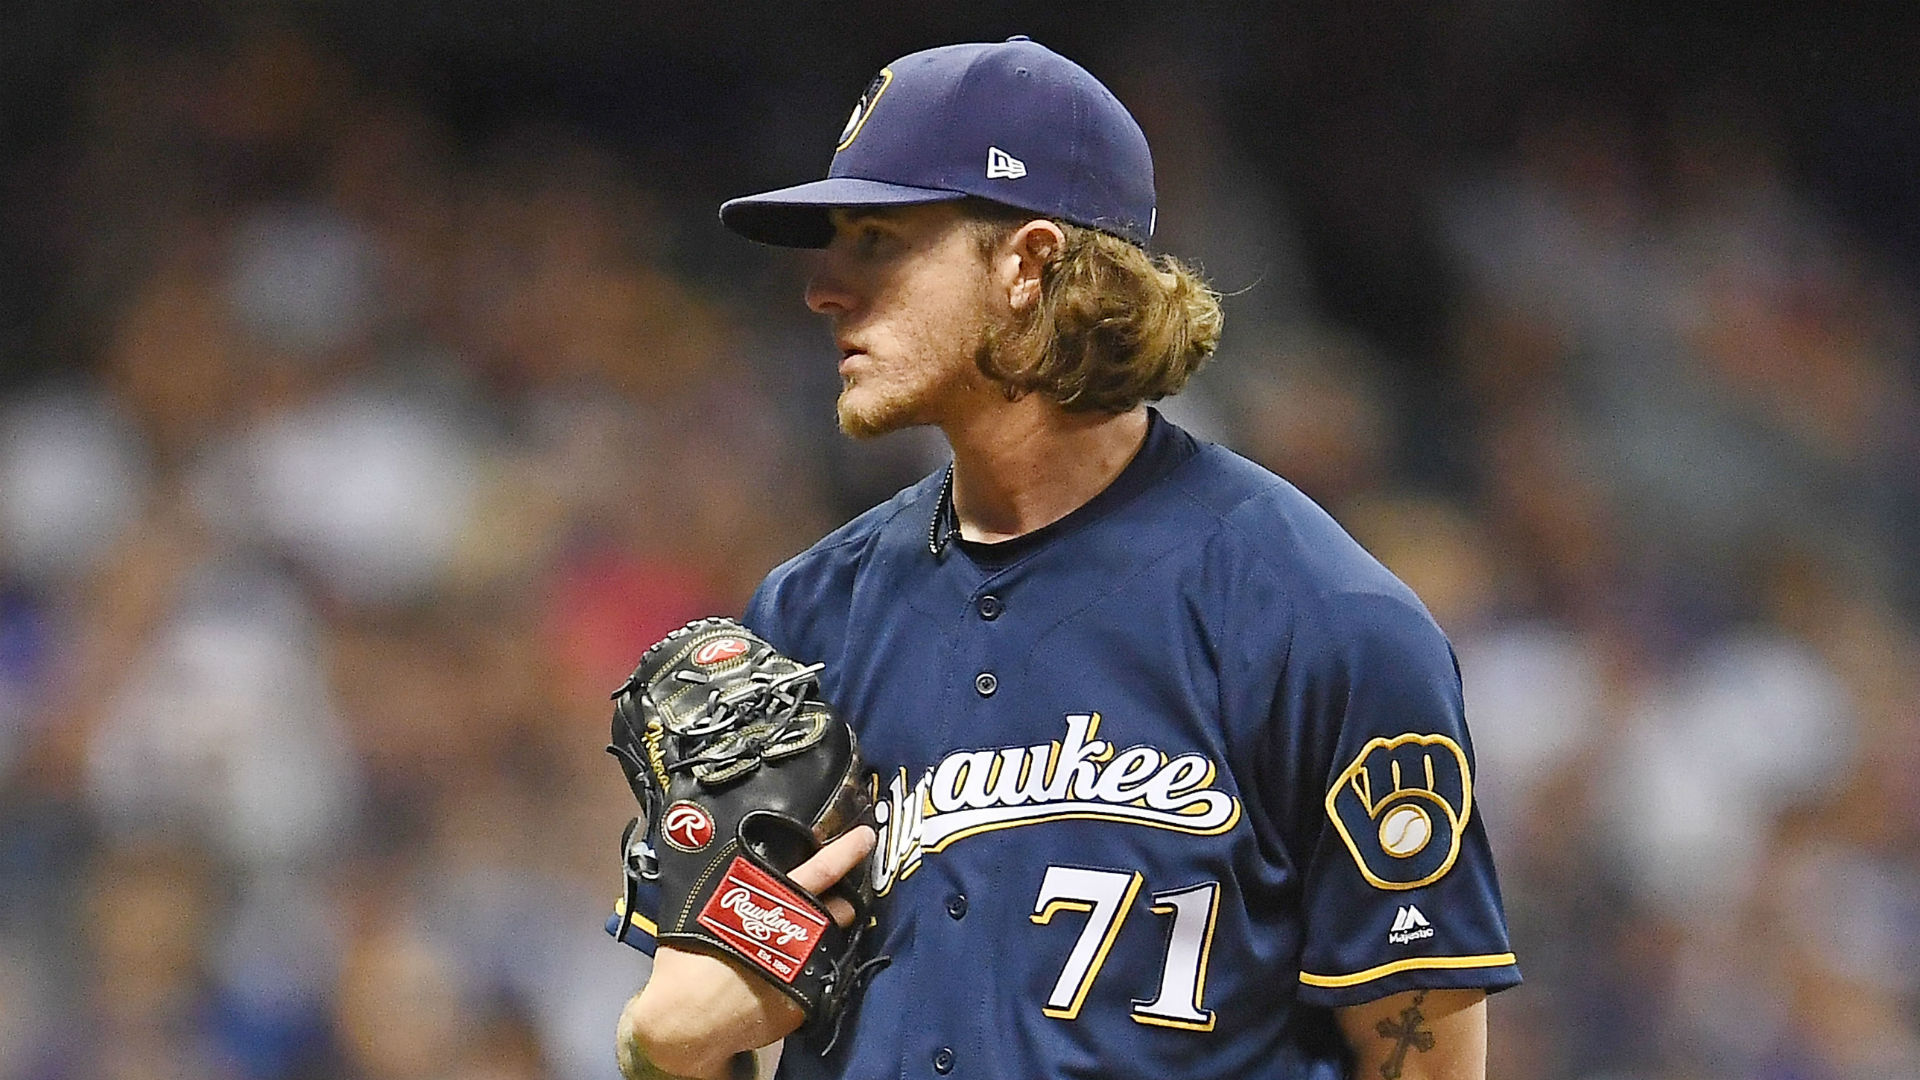 Josh Hader emotional apologizing to teammates for old offensive tweets